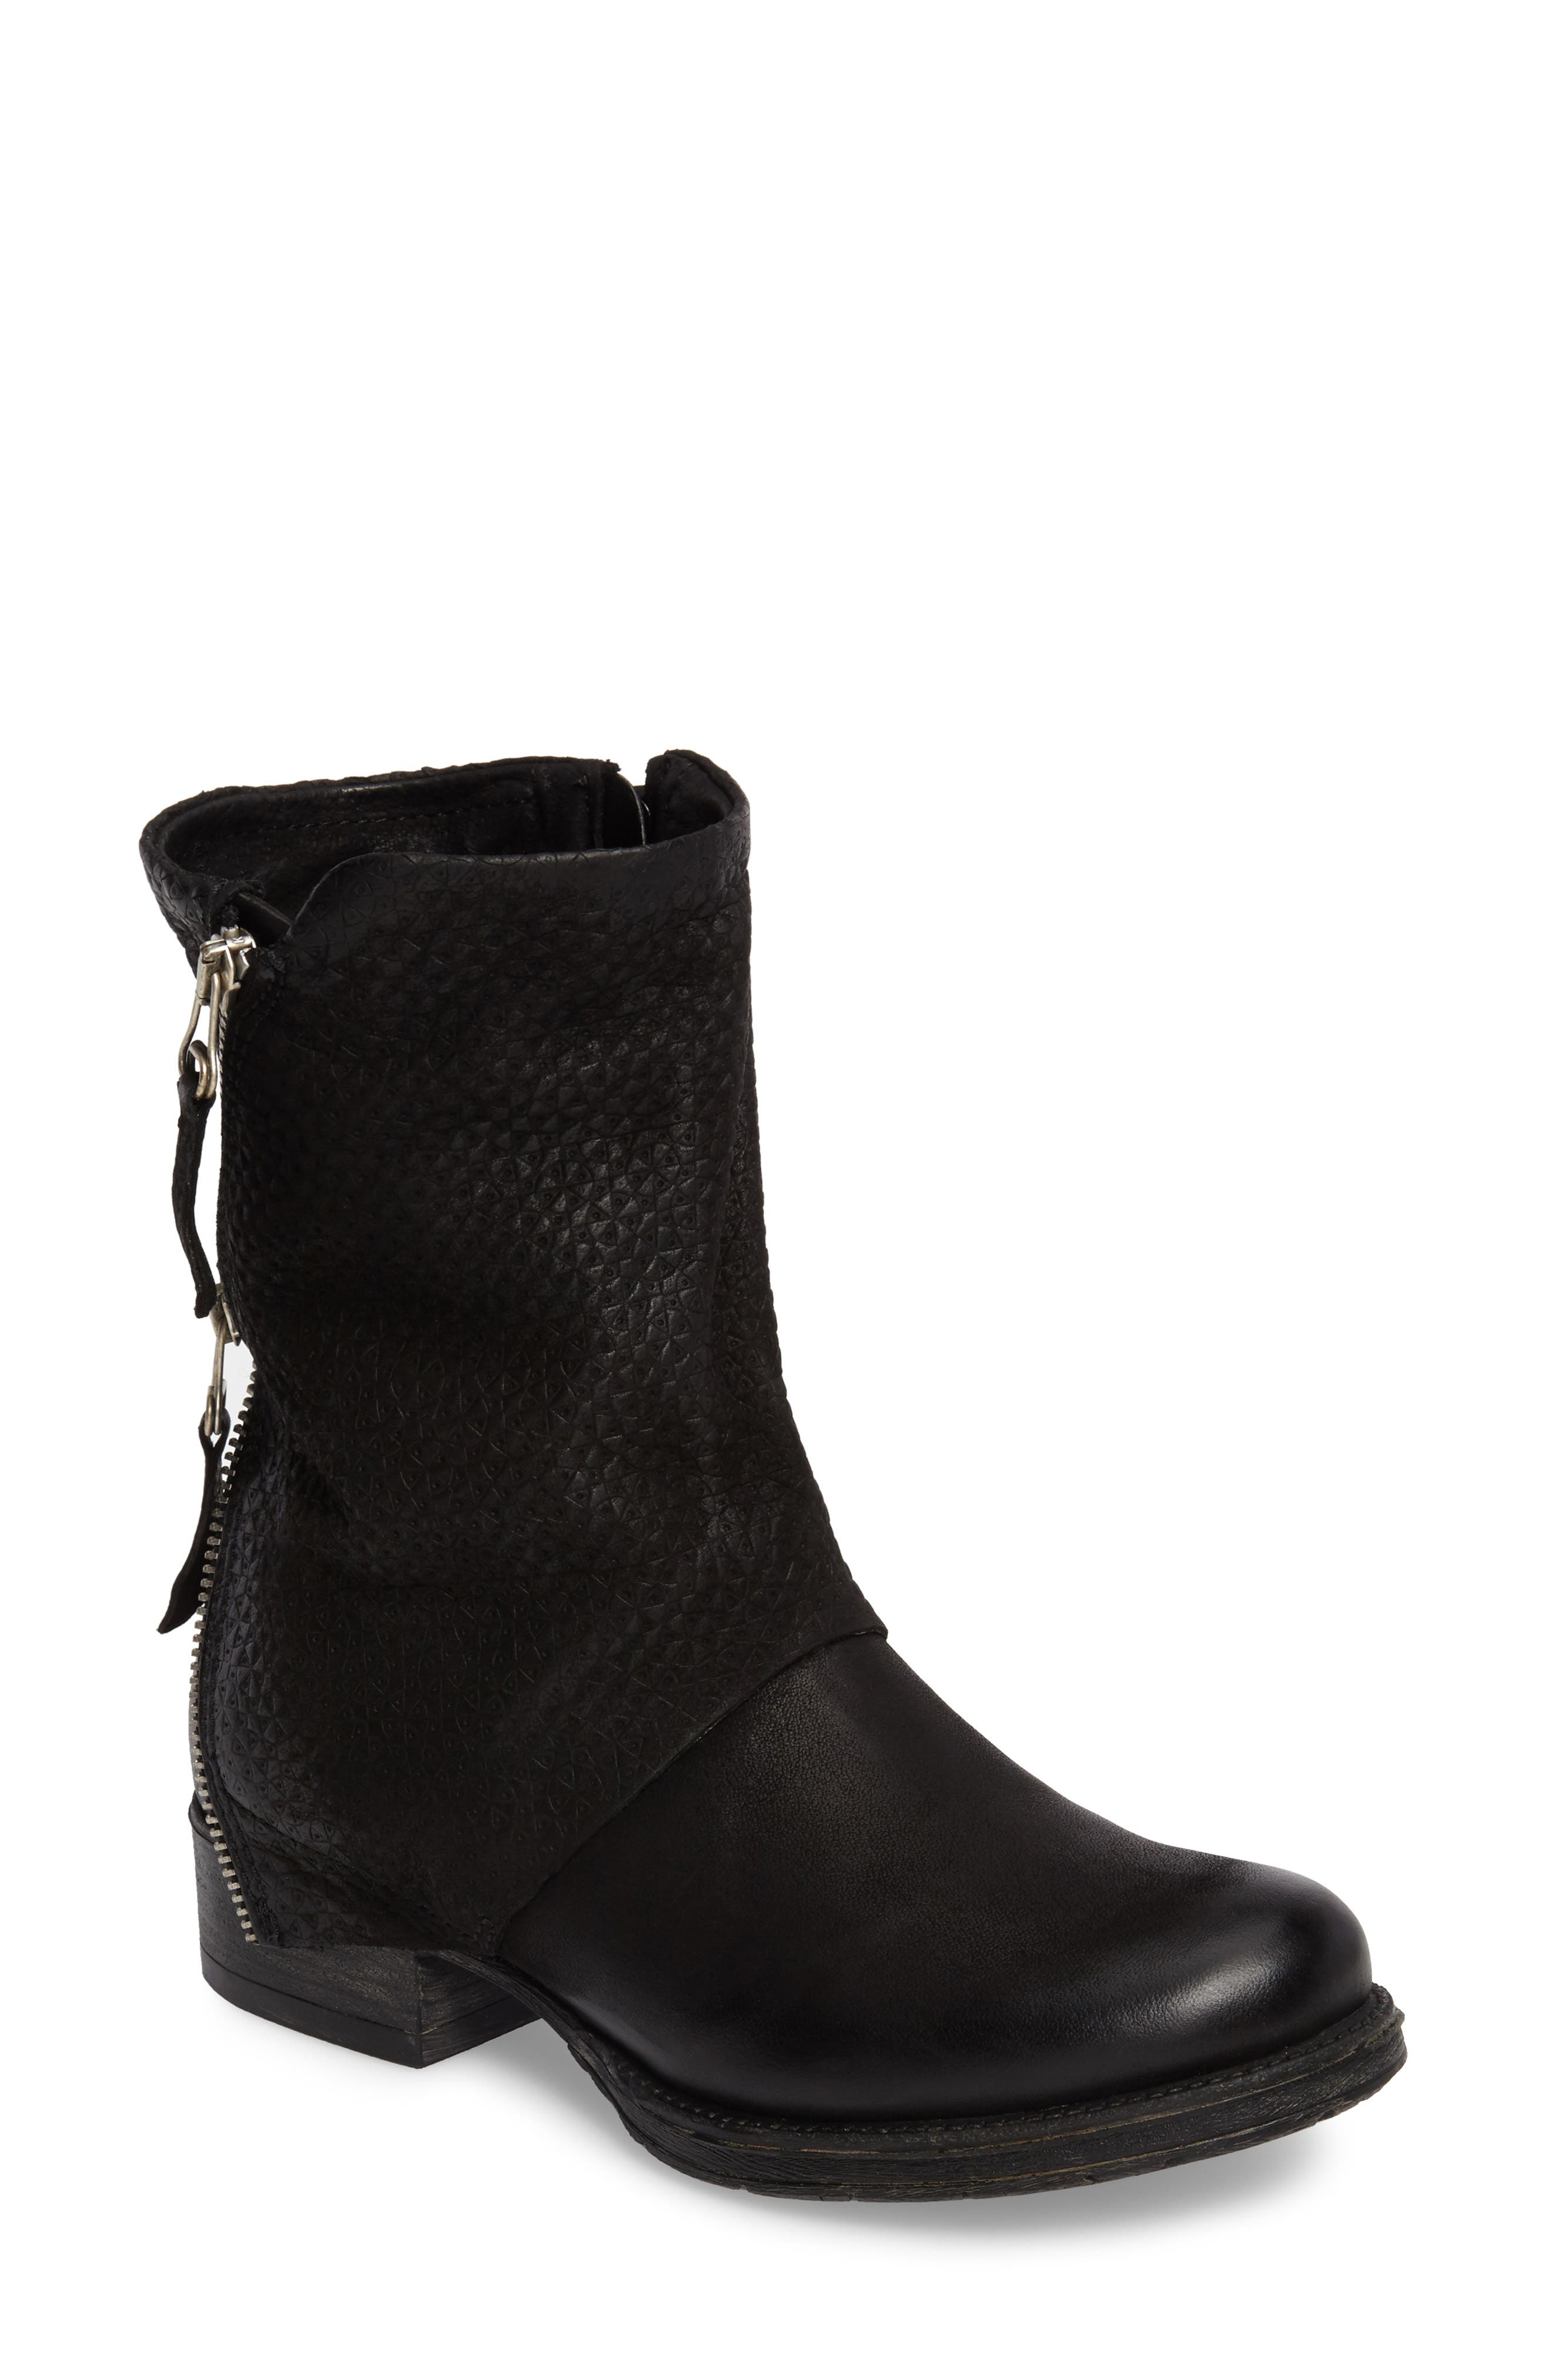 Miz Mooz Nugget Asymmetrical Textured Boot (Women)